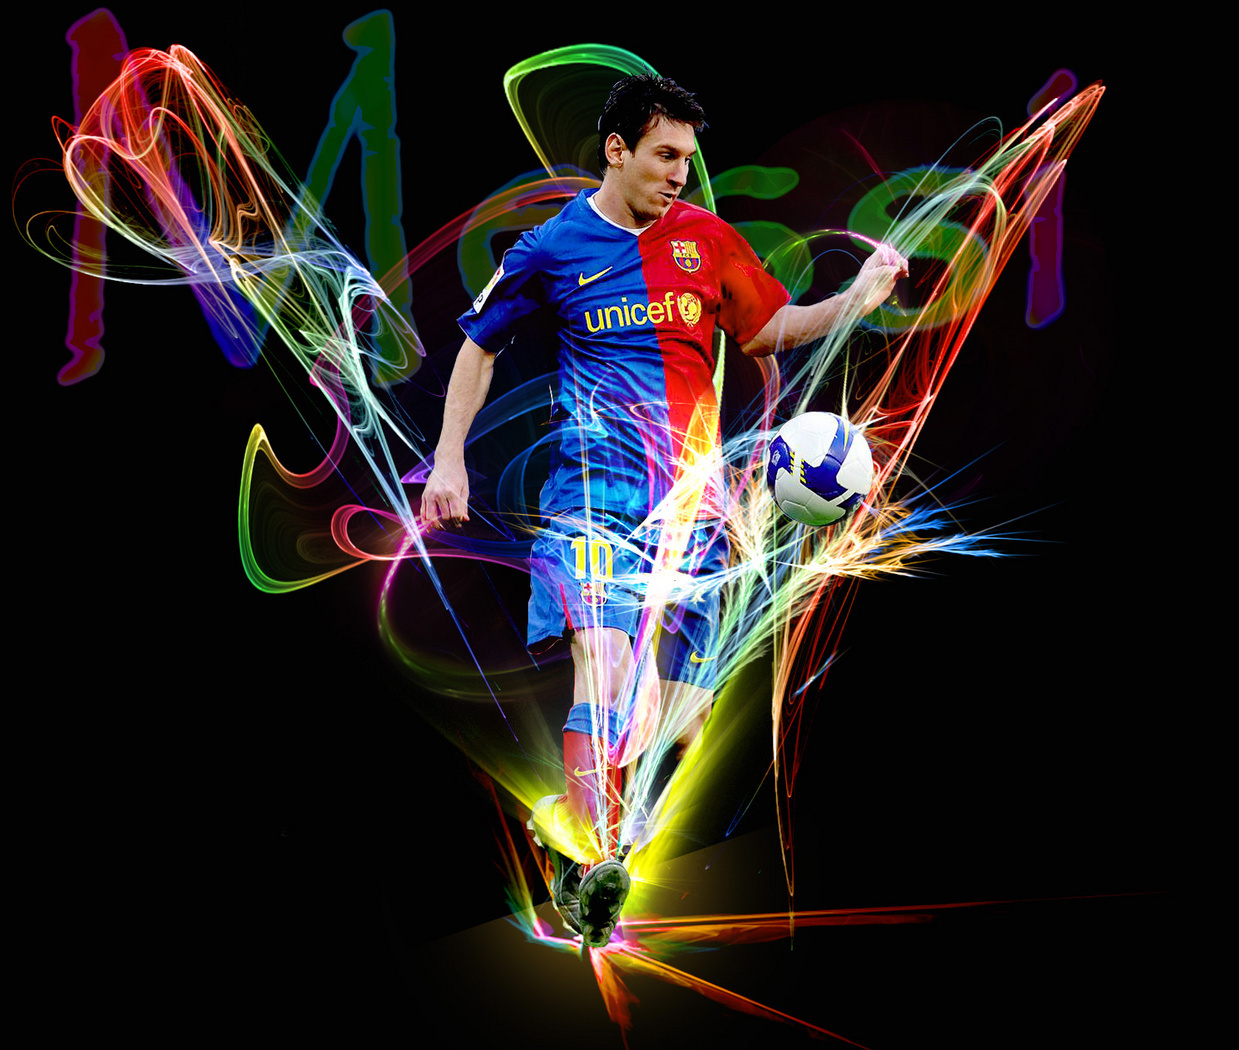 TOP BEST 24 LIONEL MESSI WALLPAPER PHOTOS HD 2018 1239x1050